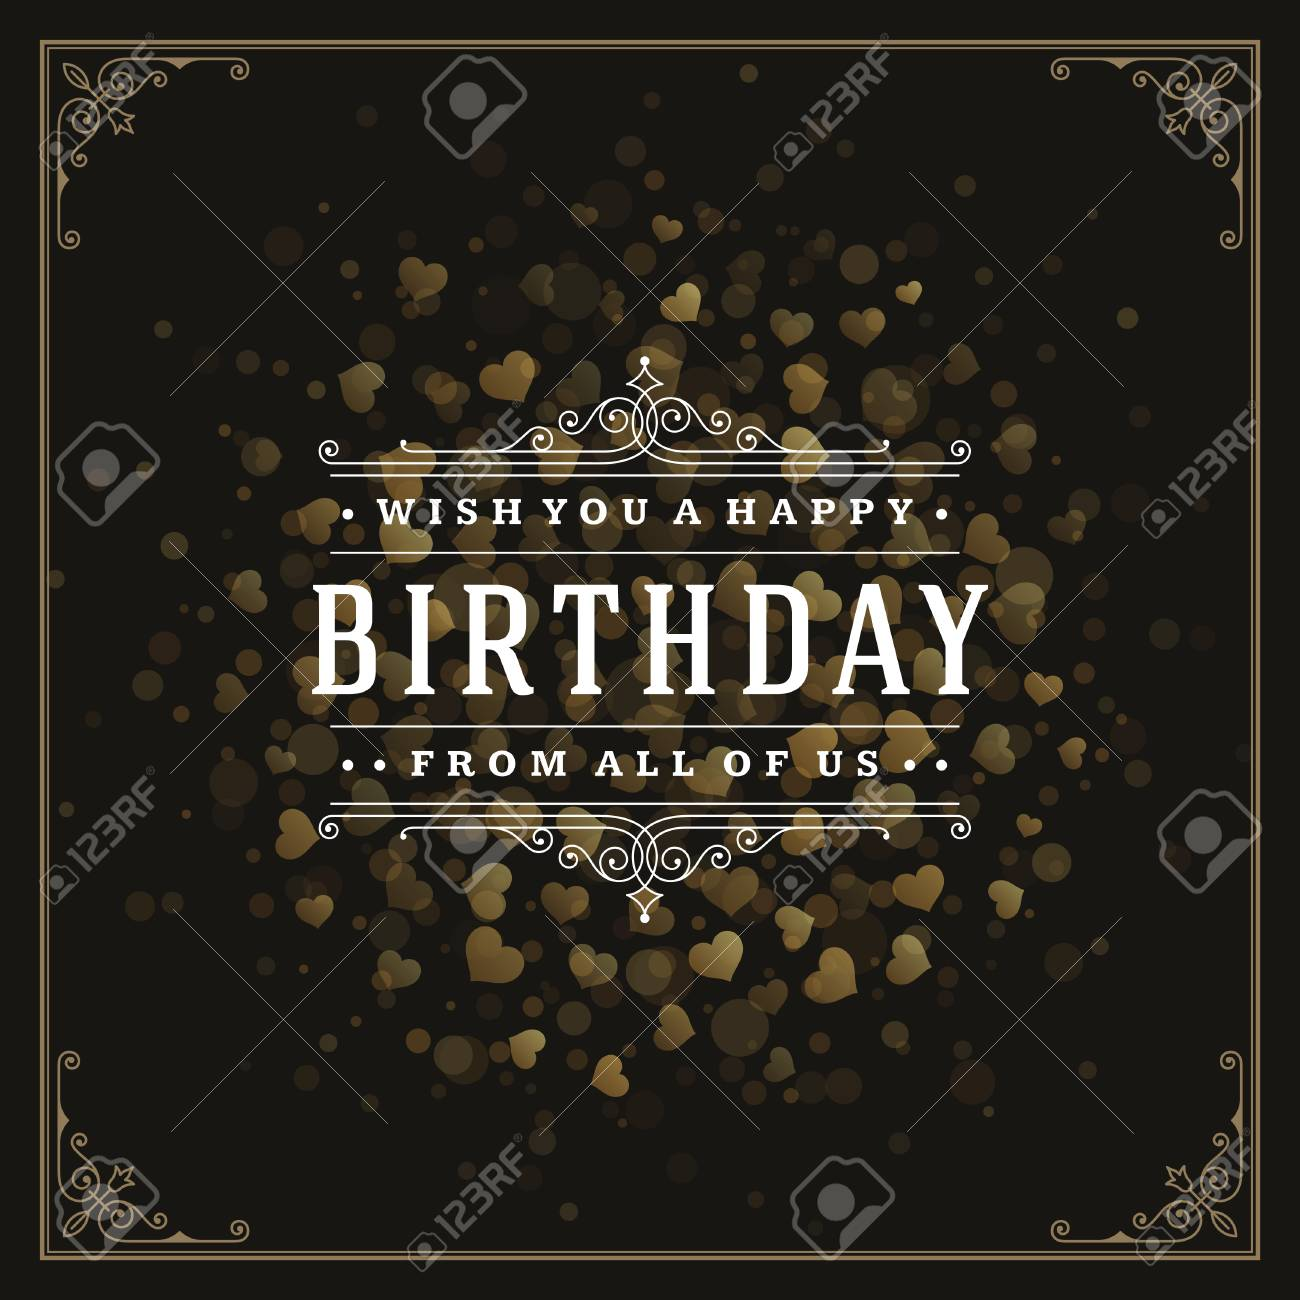 vintage typographic template with wish message and decoration